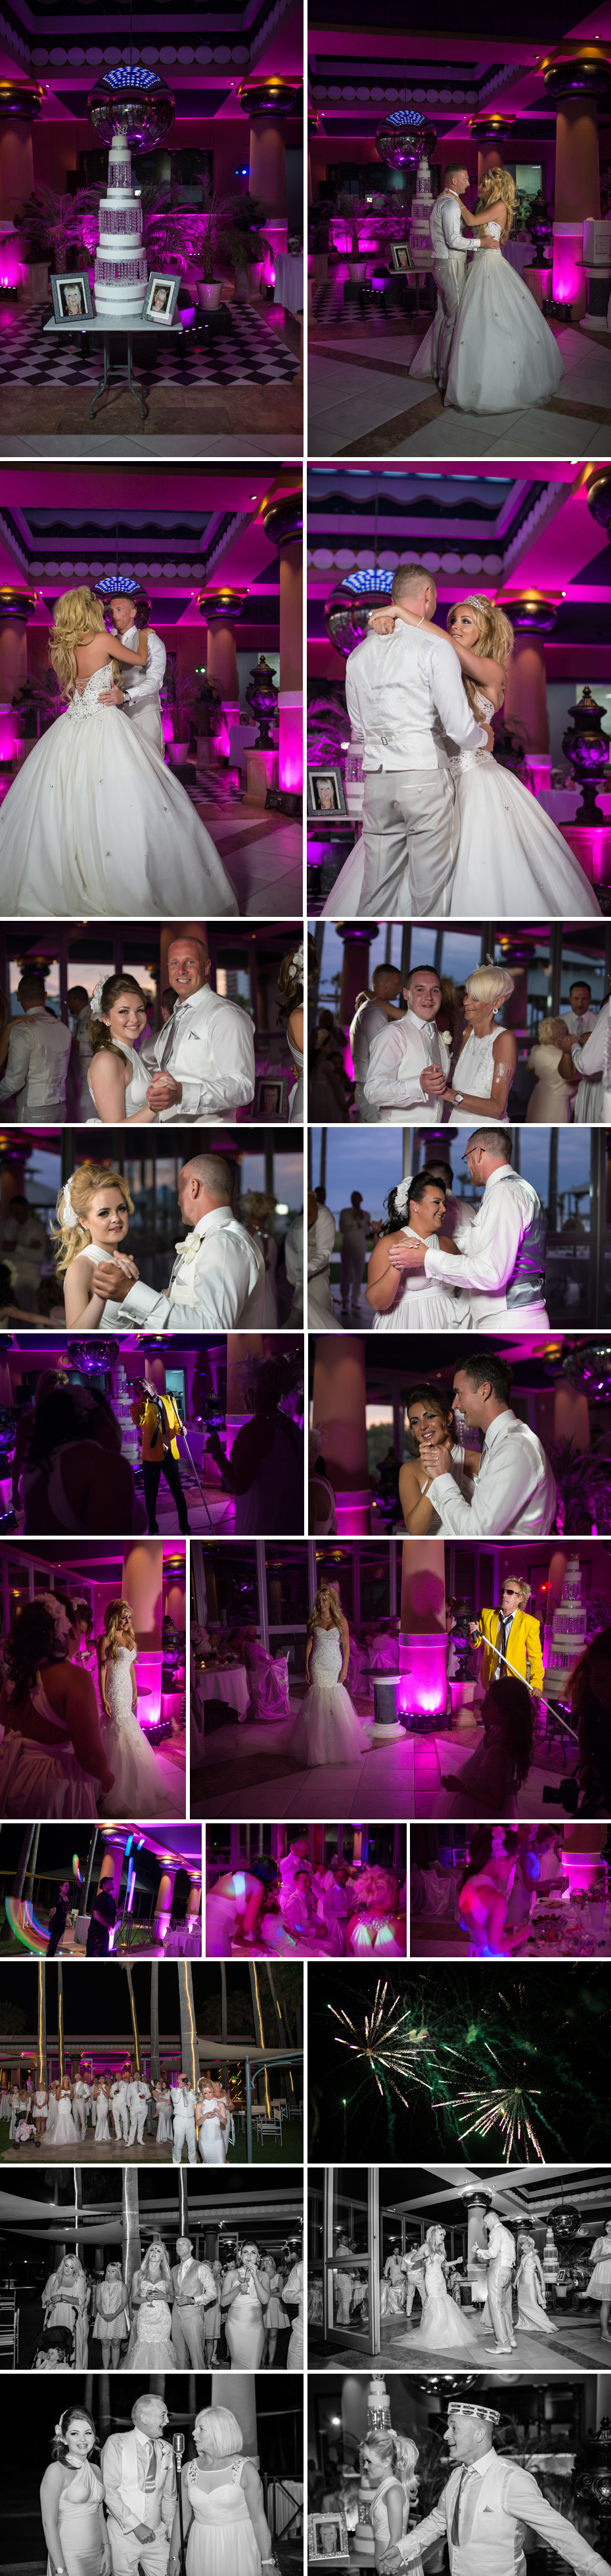 wedding-celebration-marbella-villa-del-mar